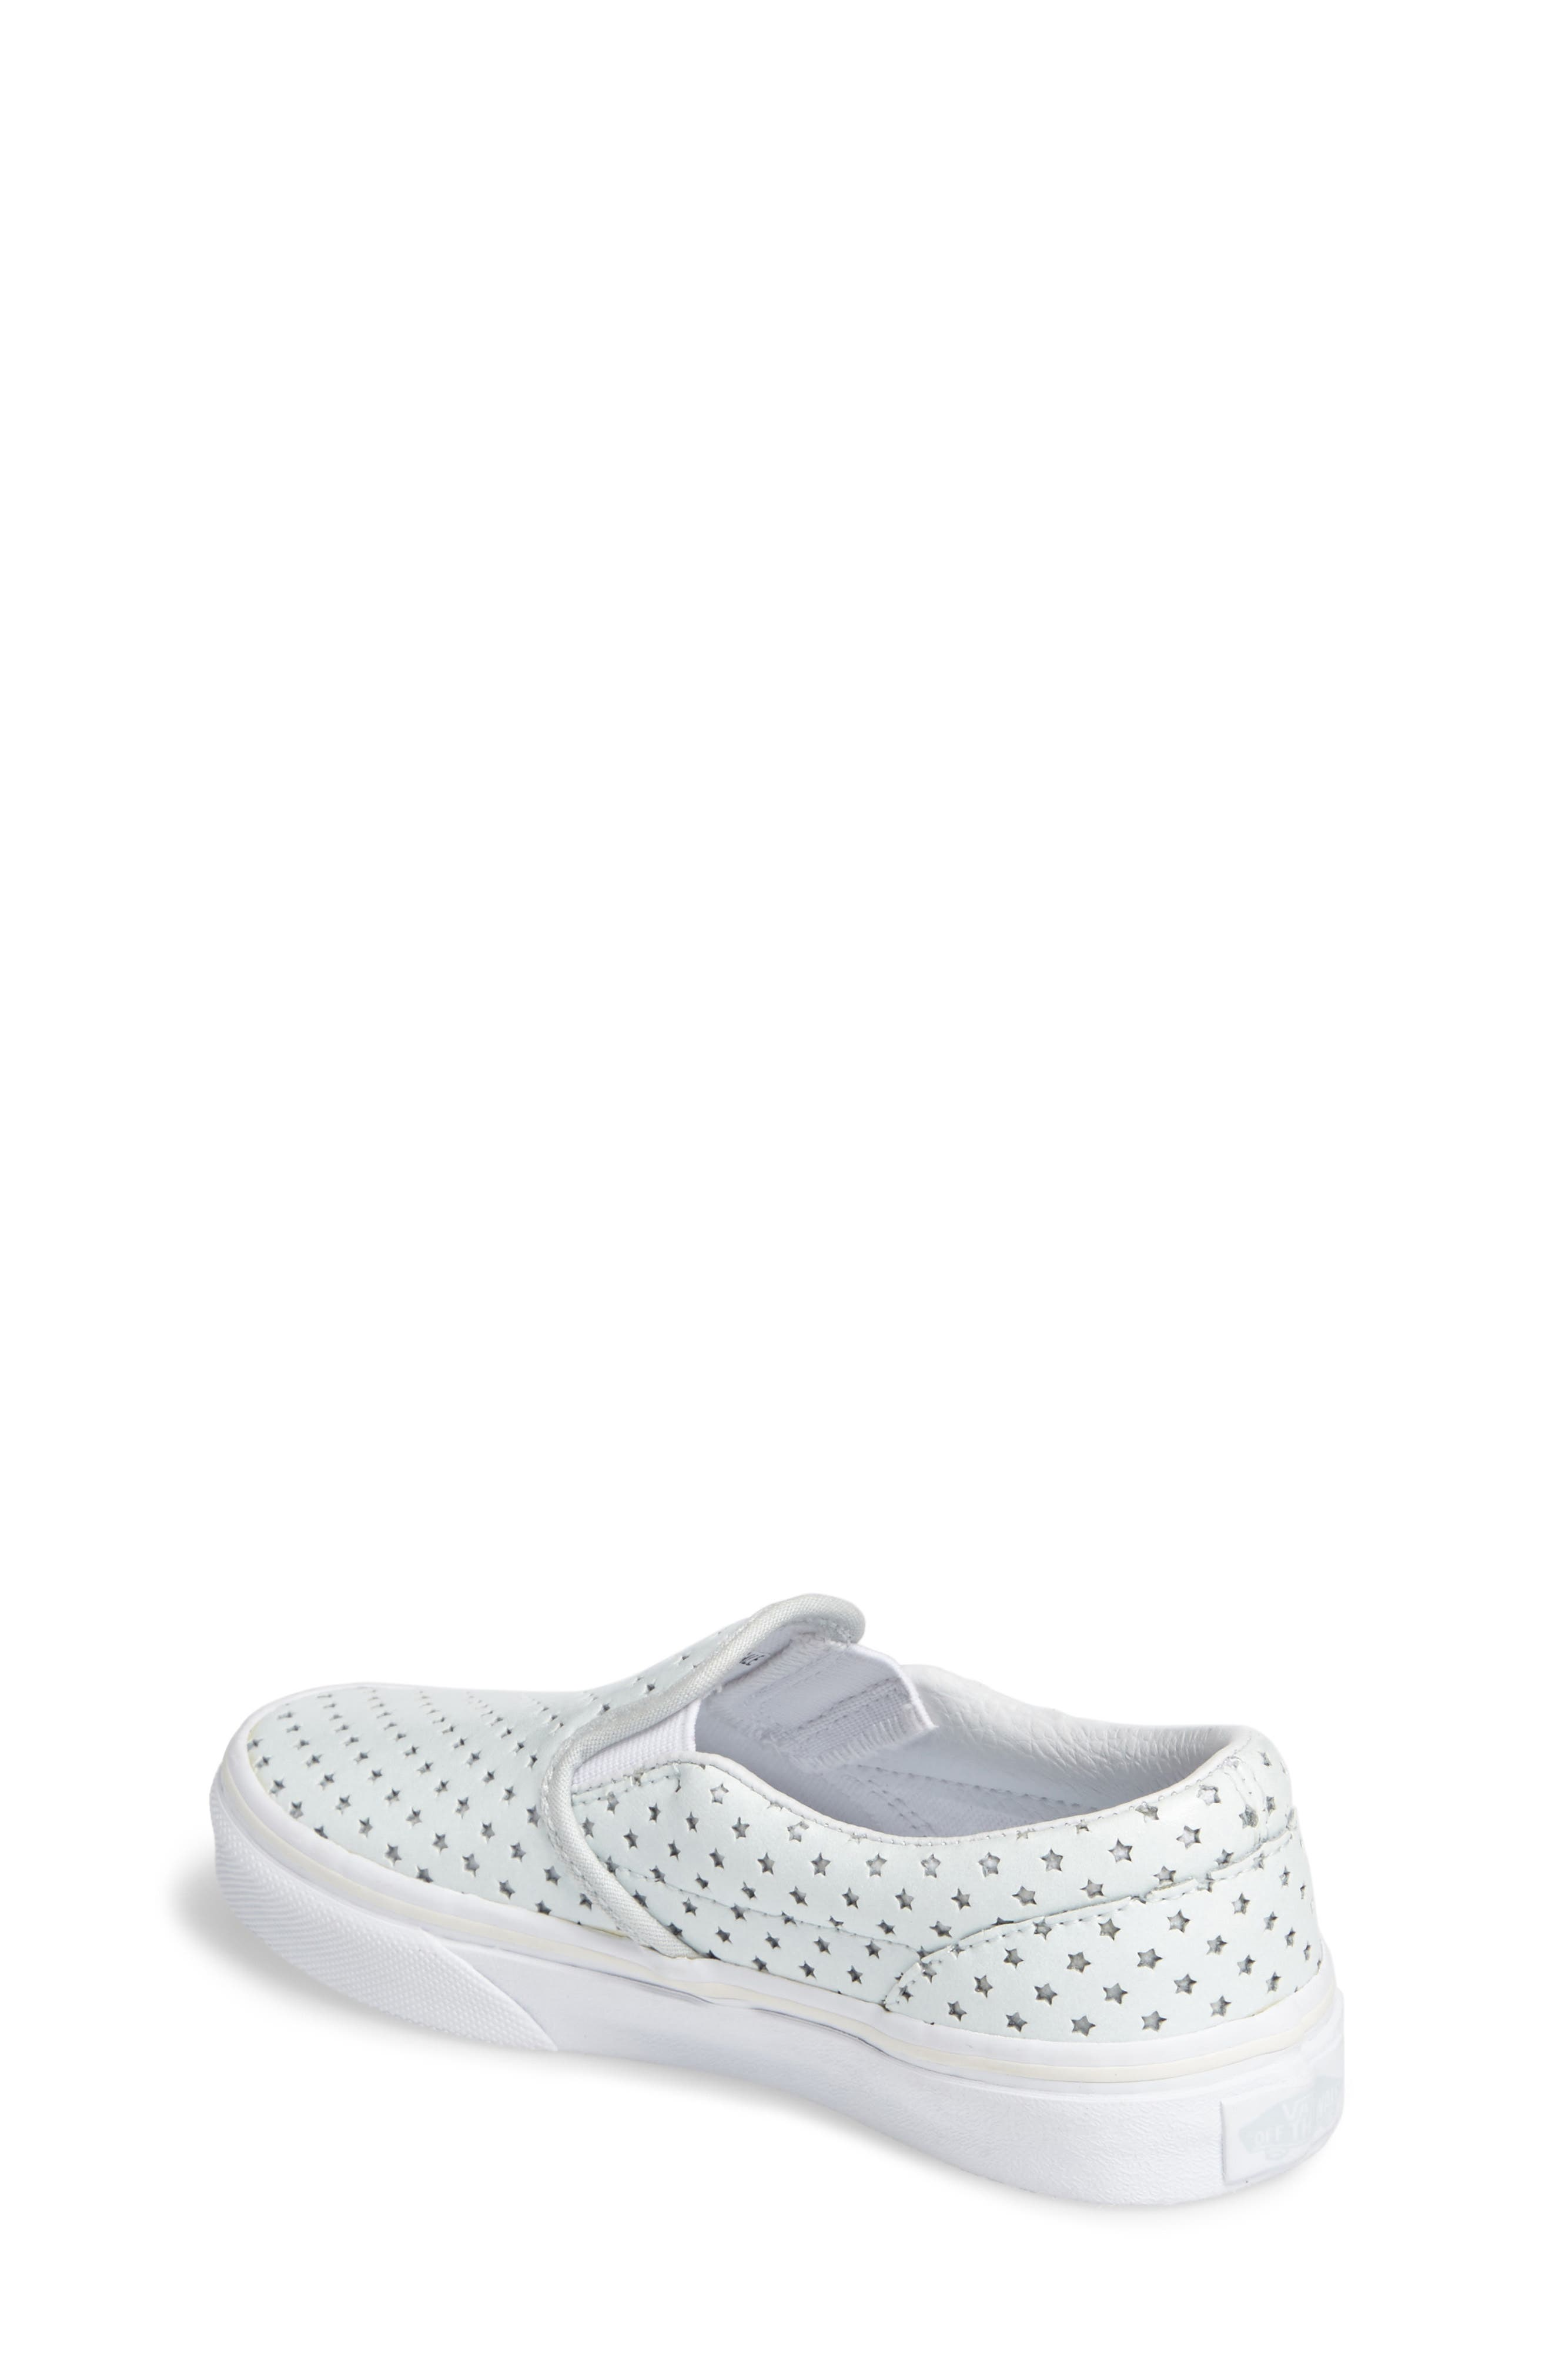 Classic Perforated Slip-On Sneaker,                             Alternate thumbnail 2, color,                             Stars Pearlized Leather